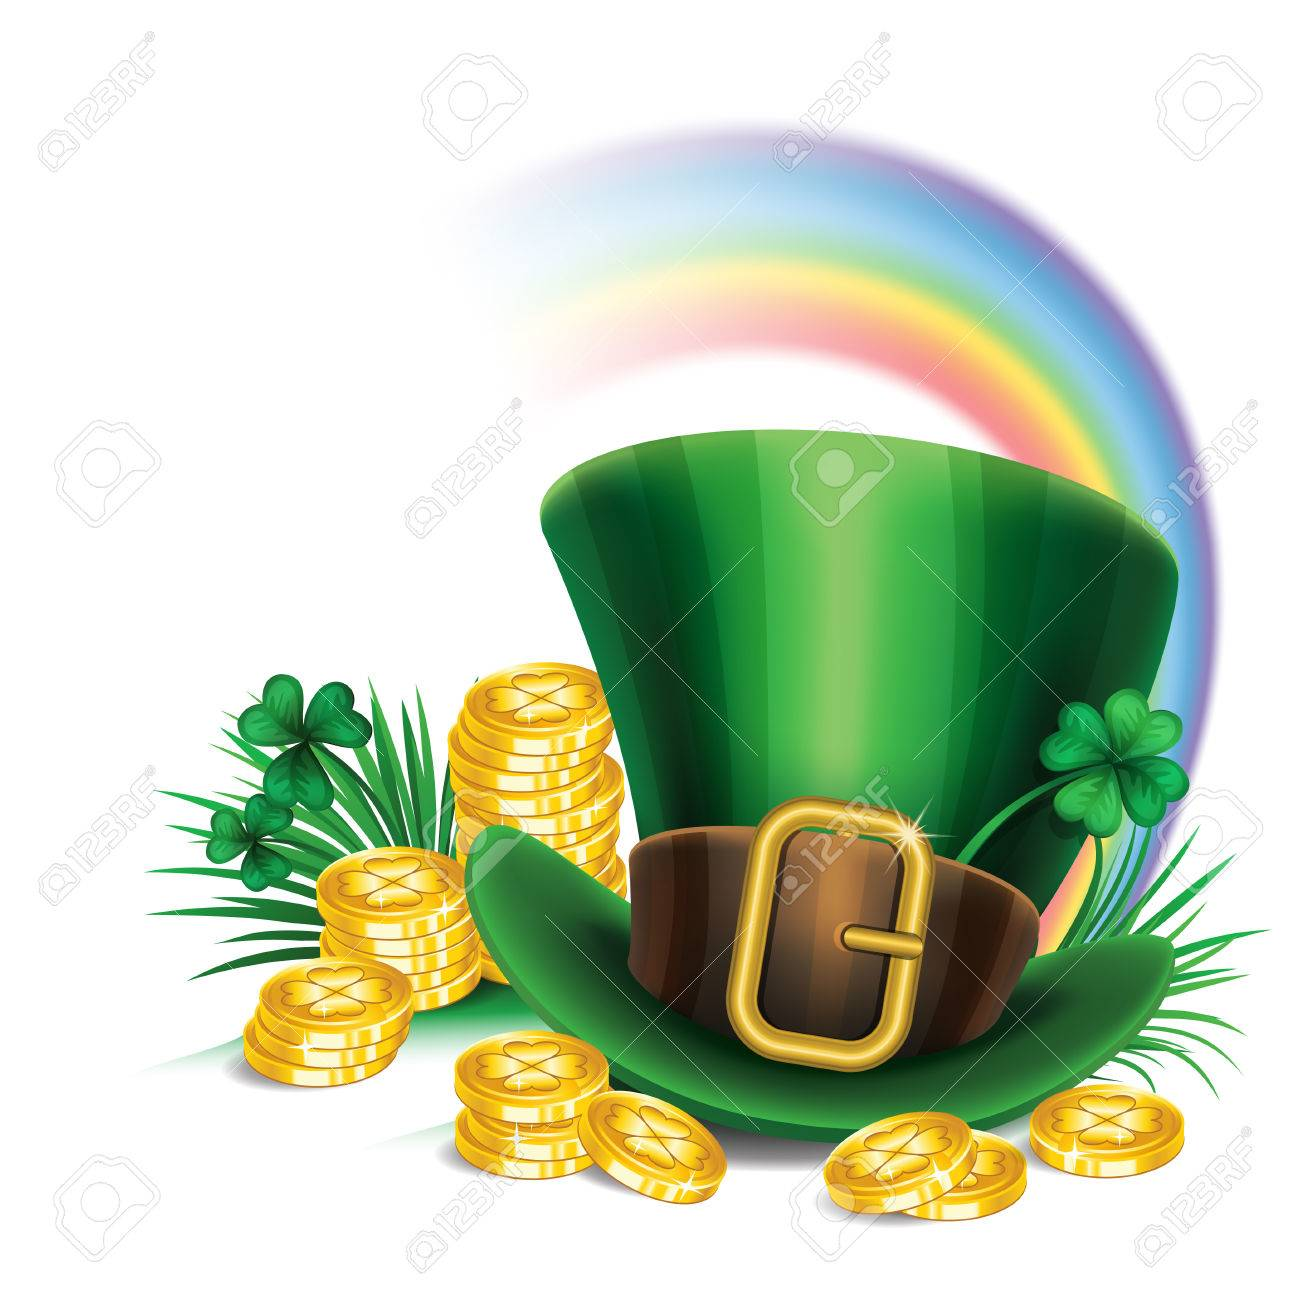 St Patricks Day Green Leprechaun Hat With Clover Gold Coins And Rainbow